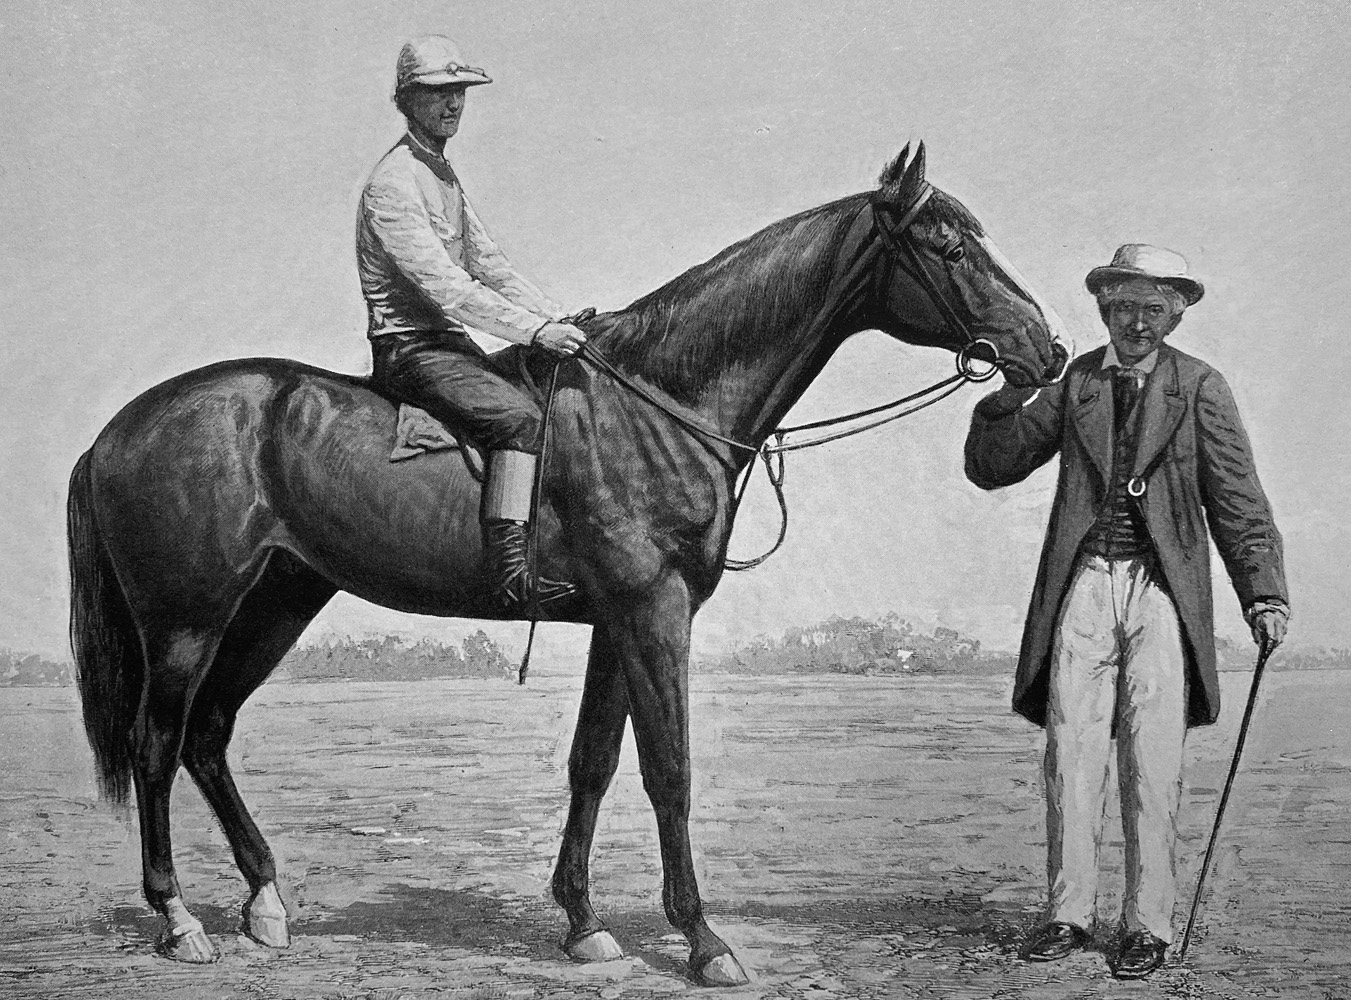 """Illustration of Longfellow from """"Racing in America, 1866-1921 (Museum Collection)"""